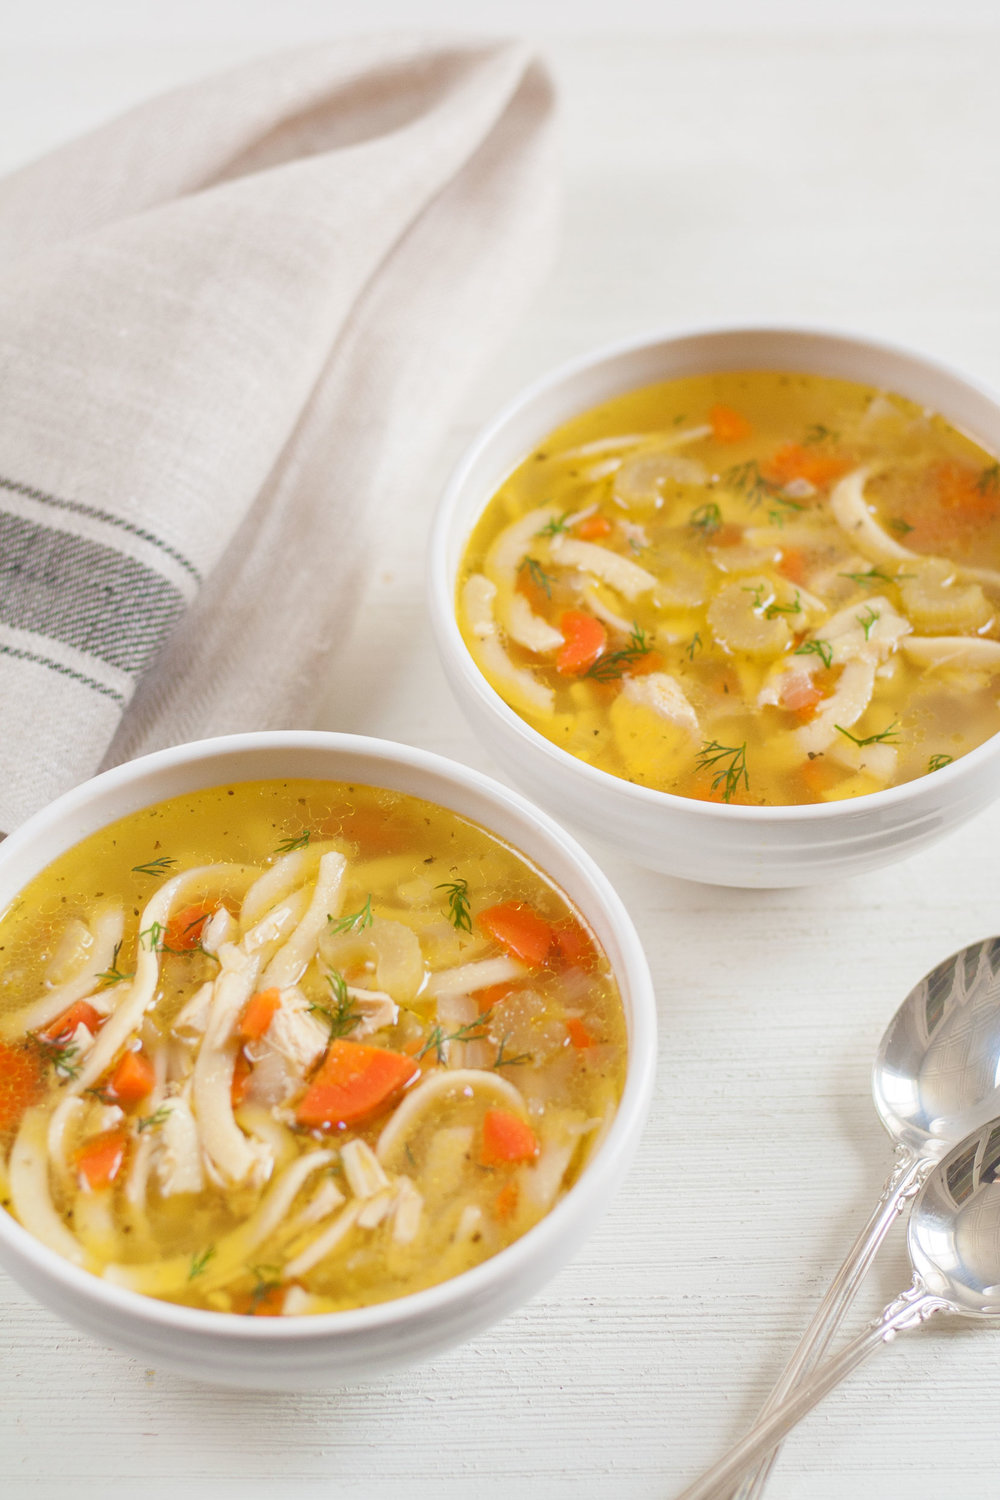 bit-and-bauble-easy-healthy-homemade-chicken-noodle-soup-recipe3.jpg